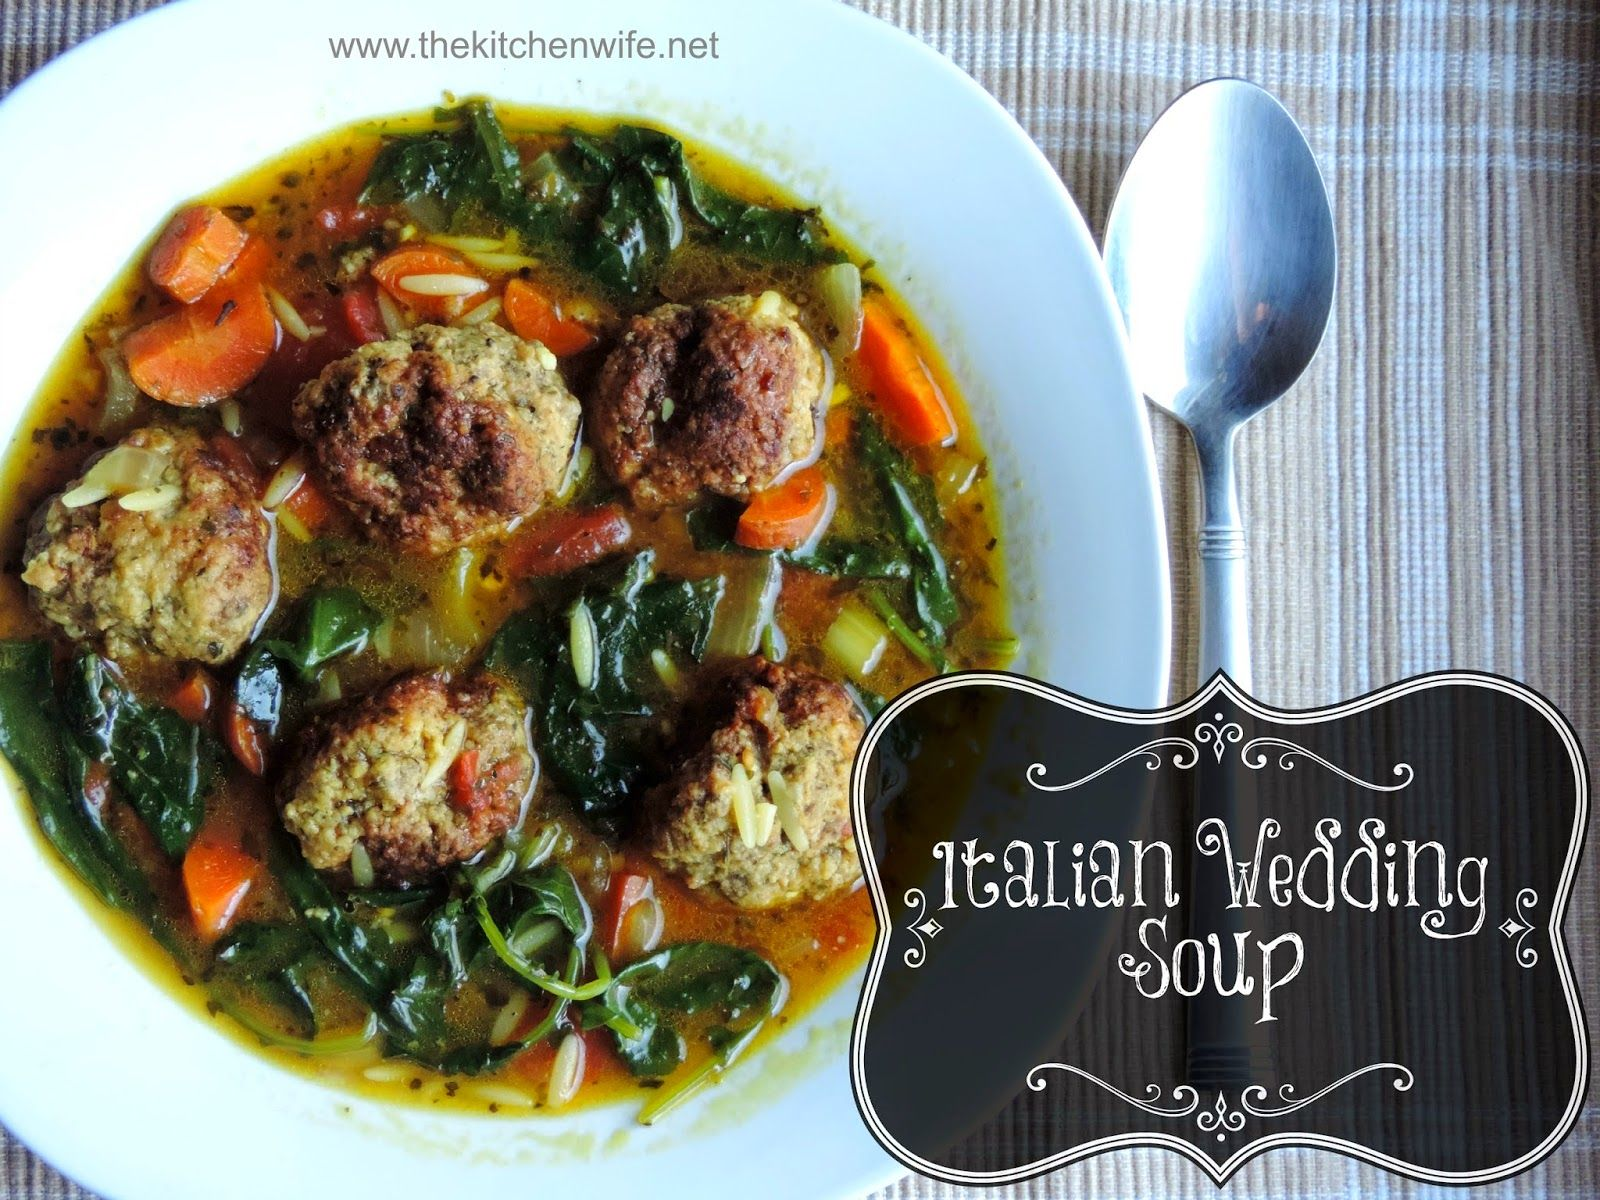 Italian Wedding Soup (With images) Italian wedding soup